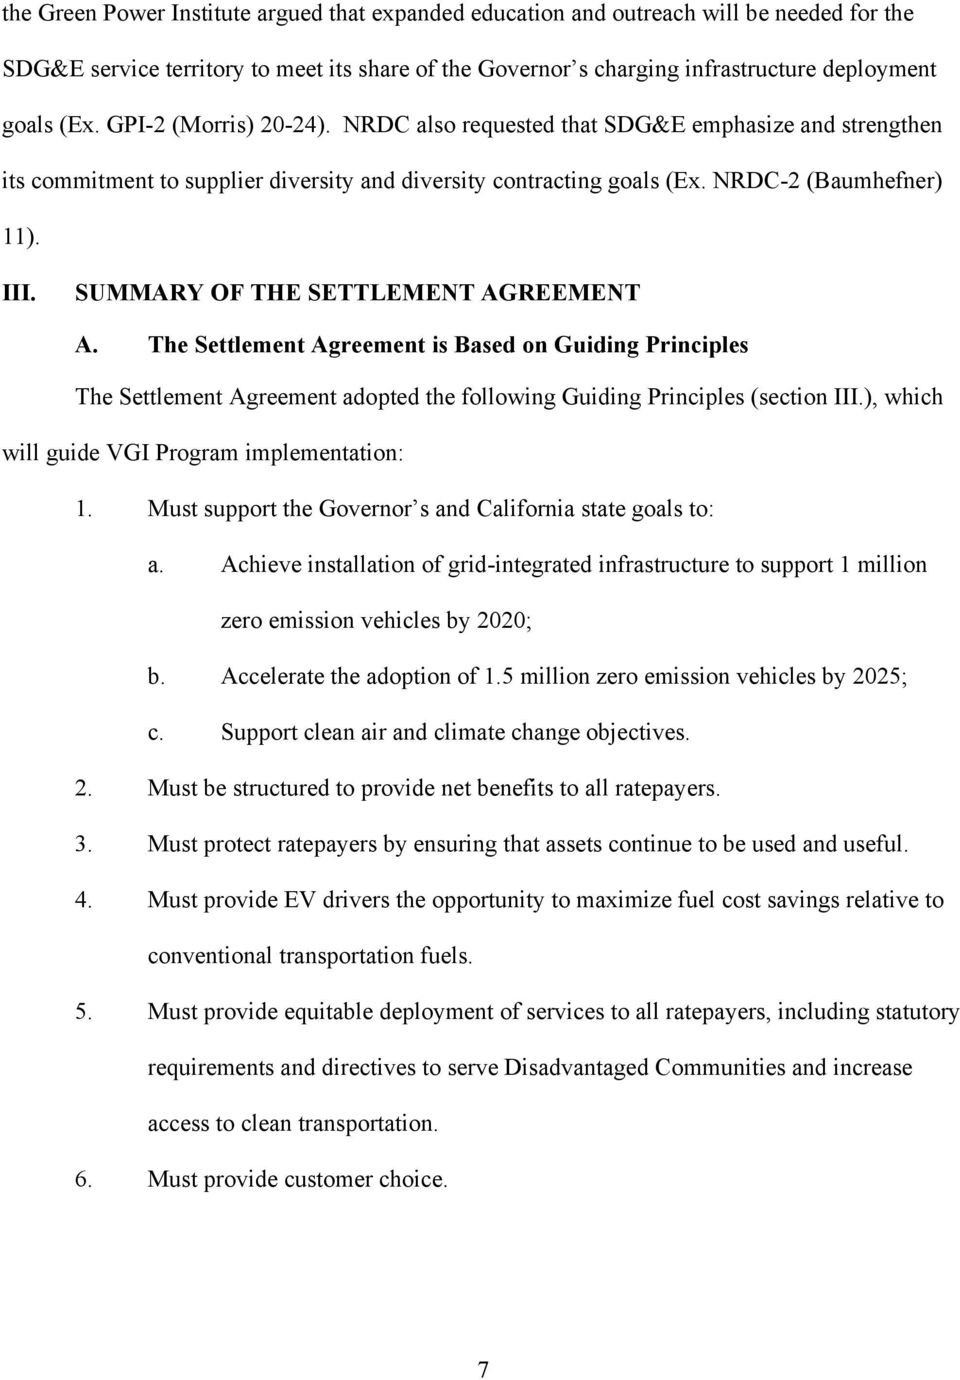 SUMMARY OF THE SETTLEMENT AGREEMENT A. The Settlement Agreement is Based on Guiding Principles The Settlement Agreement adopted the following Guiding Principles (section III.